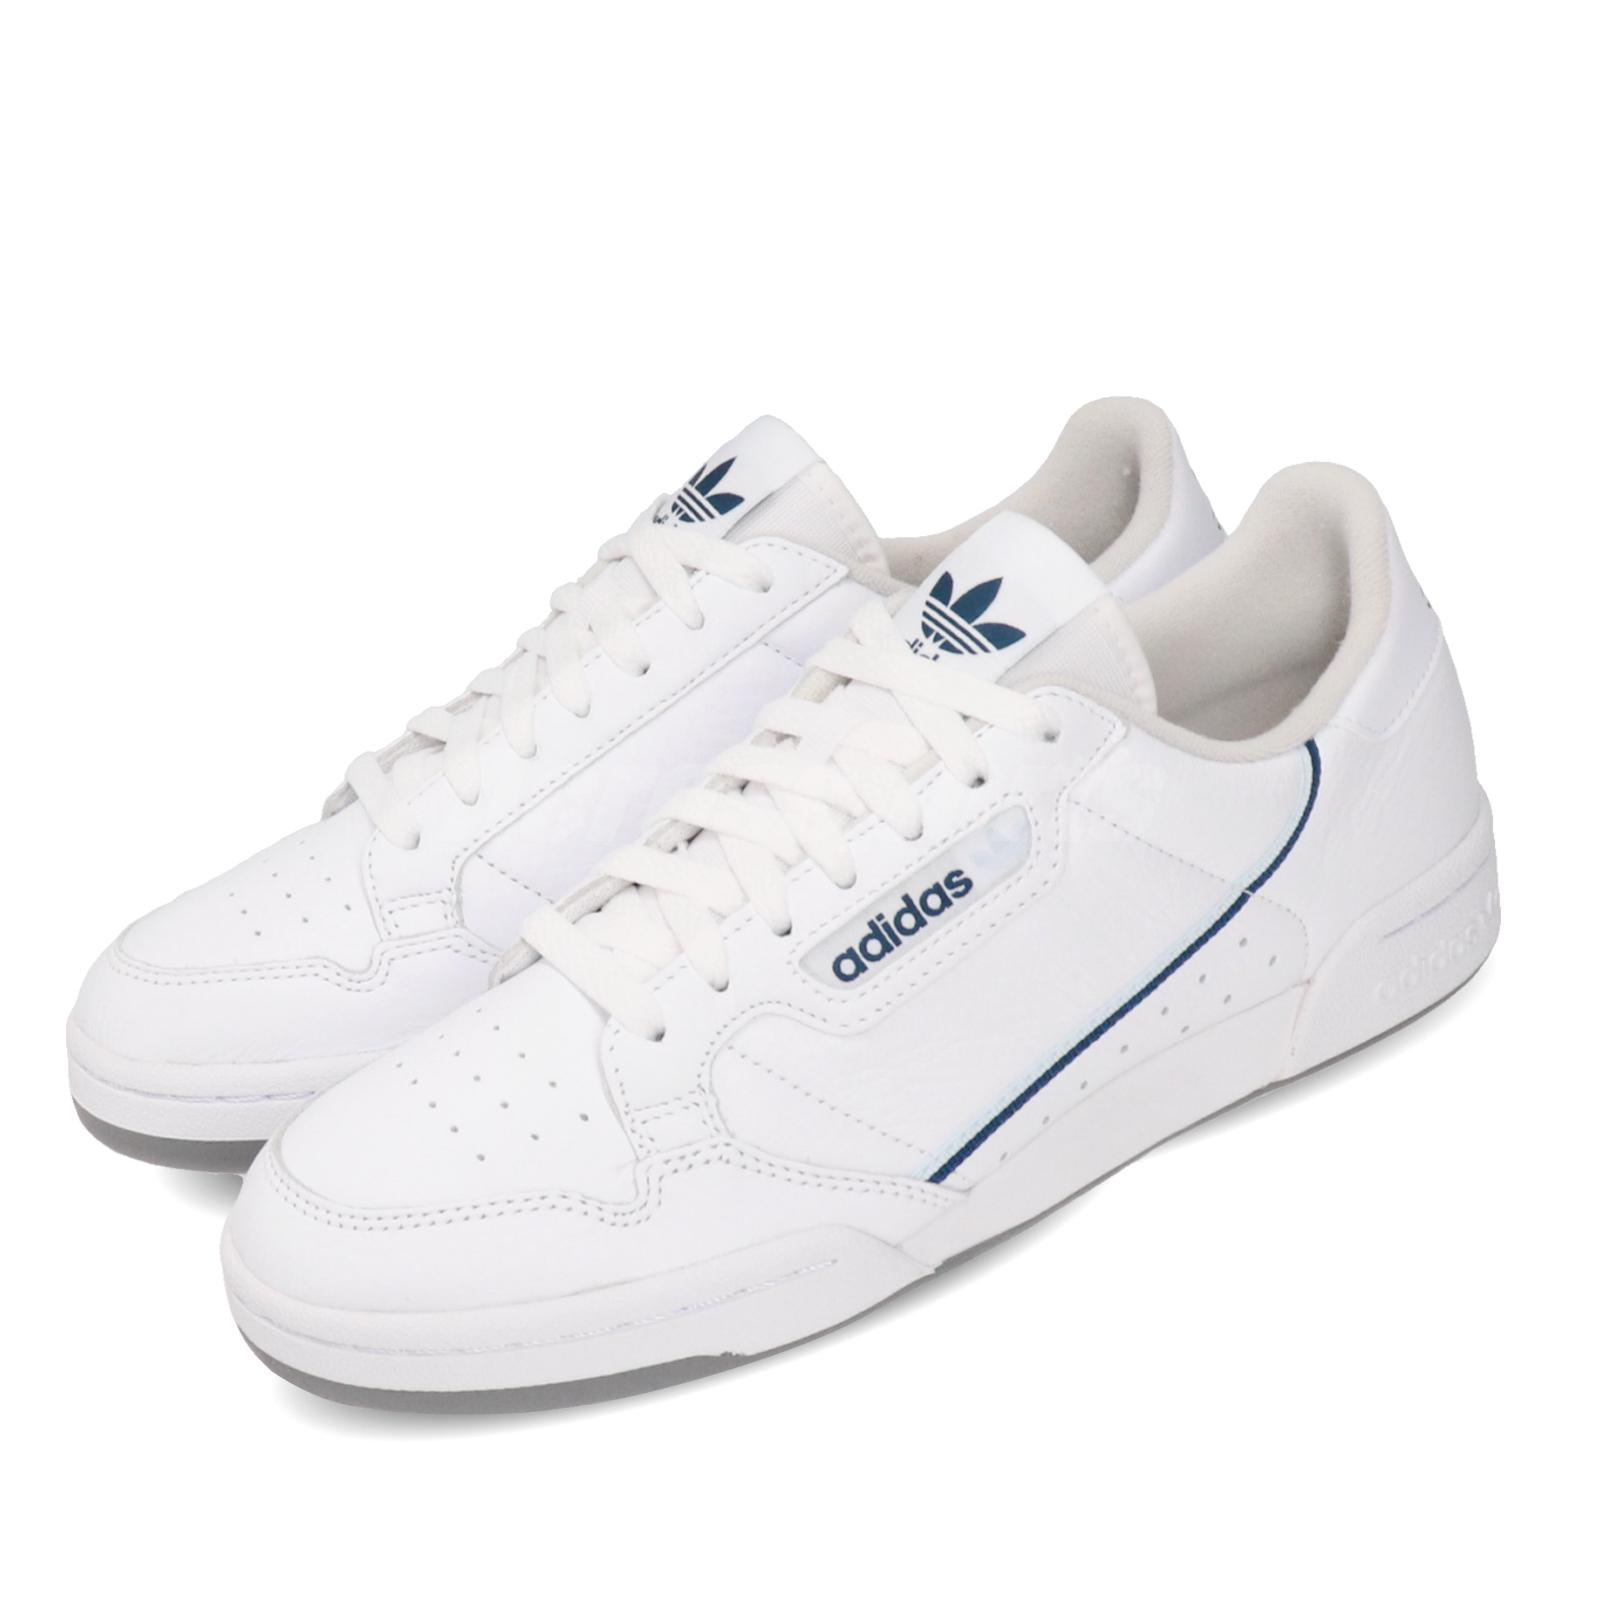 Details about adidas Originals Continental 80 White Blue Grey Men Classic  Casual Shoes EF5988